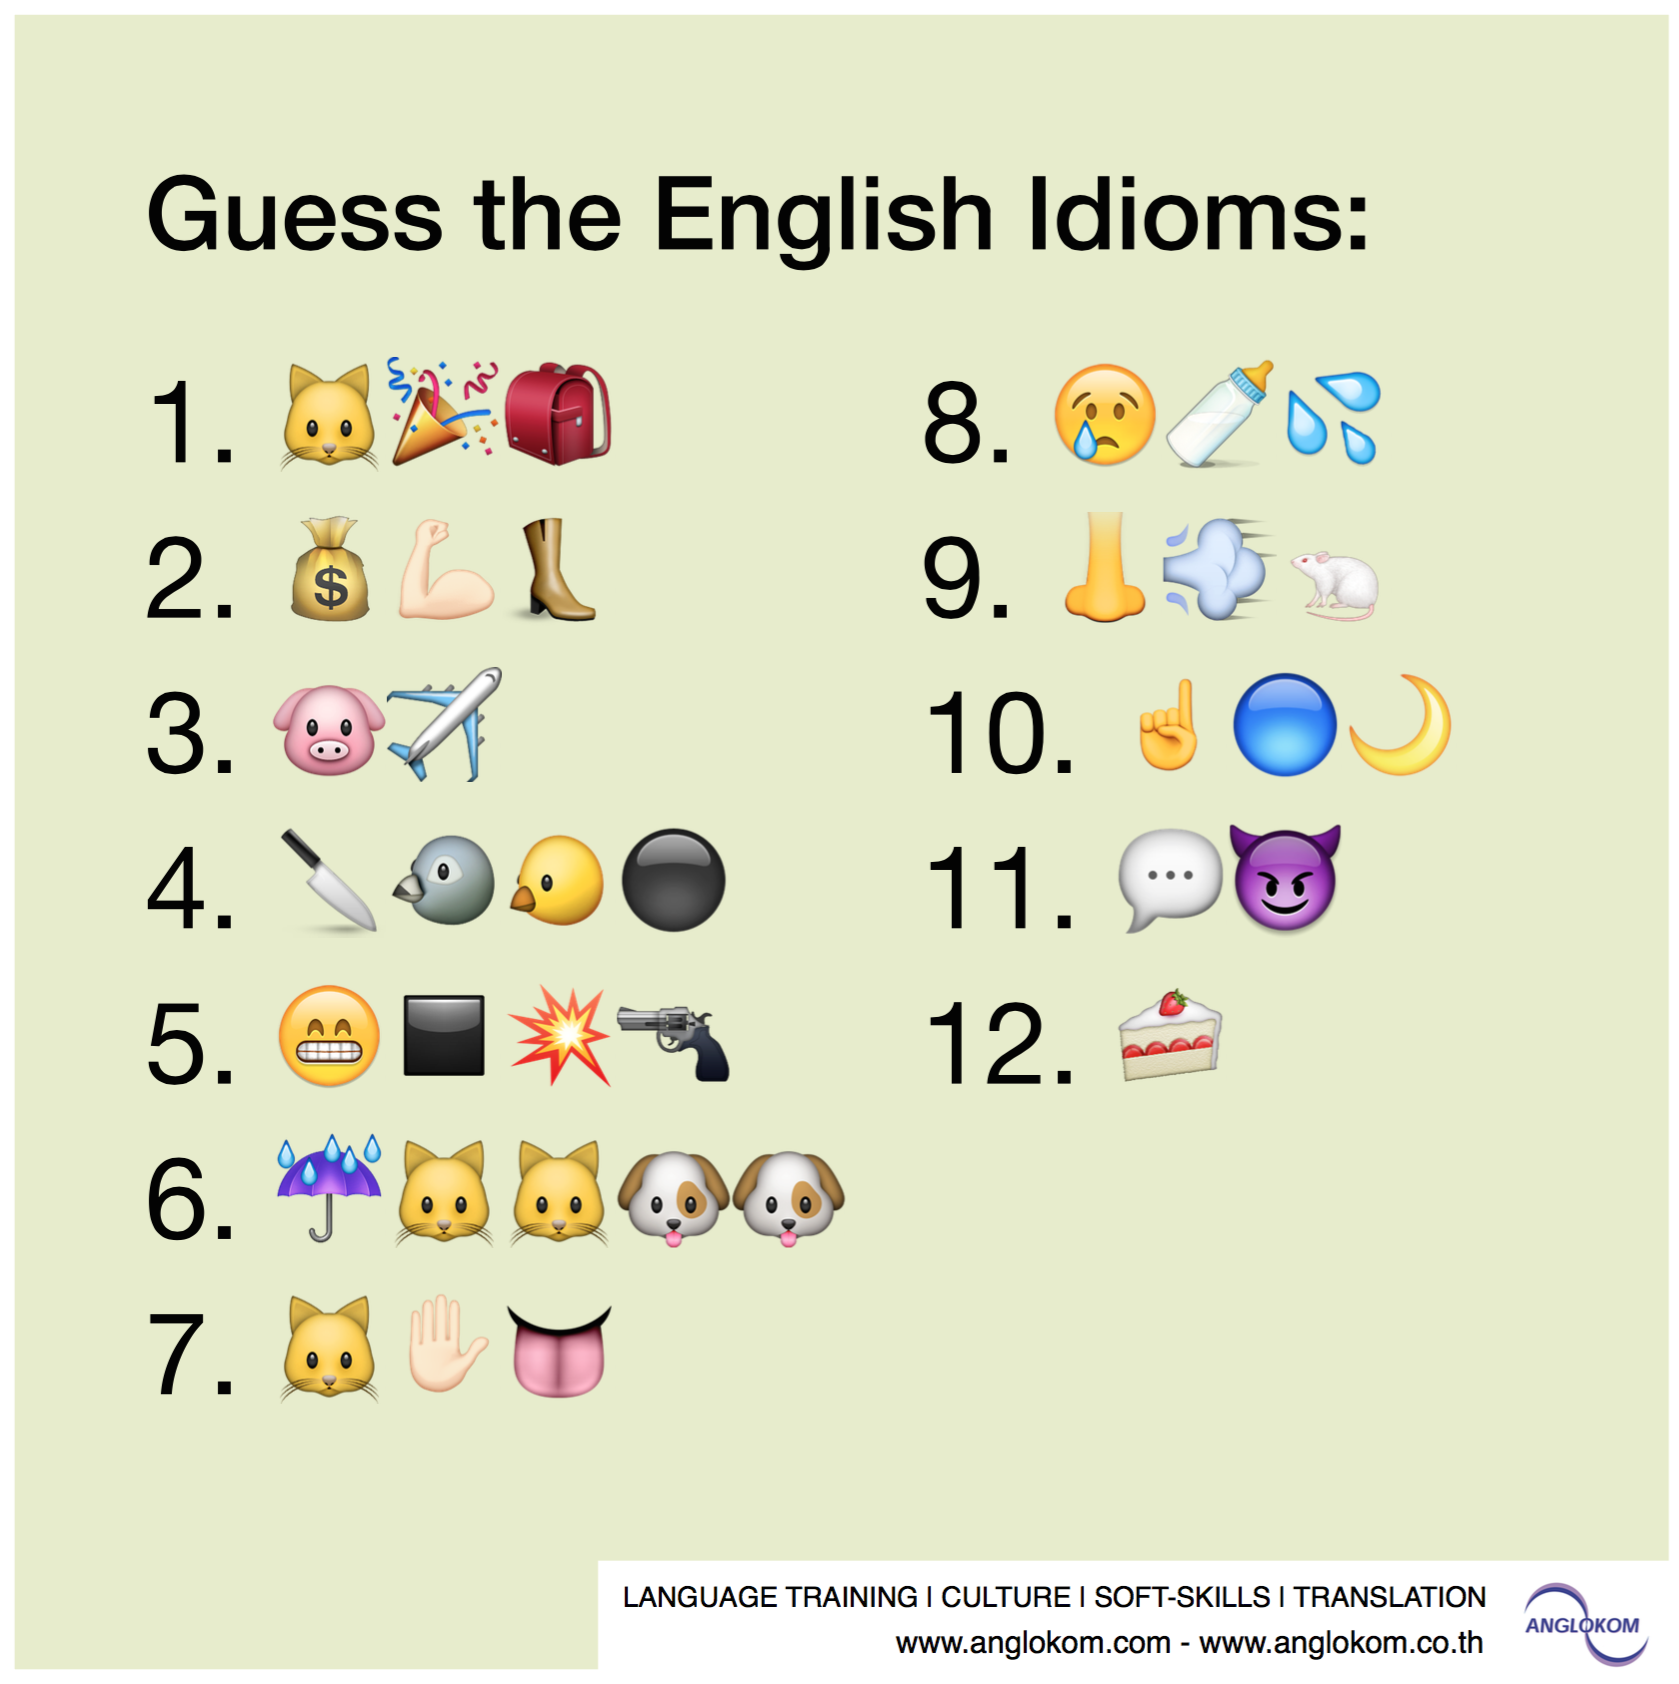 Guess the English idioms shown using these emoji. emoji